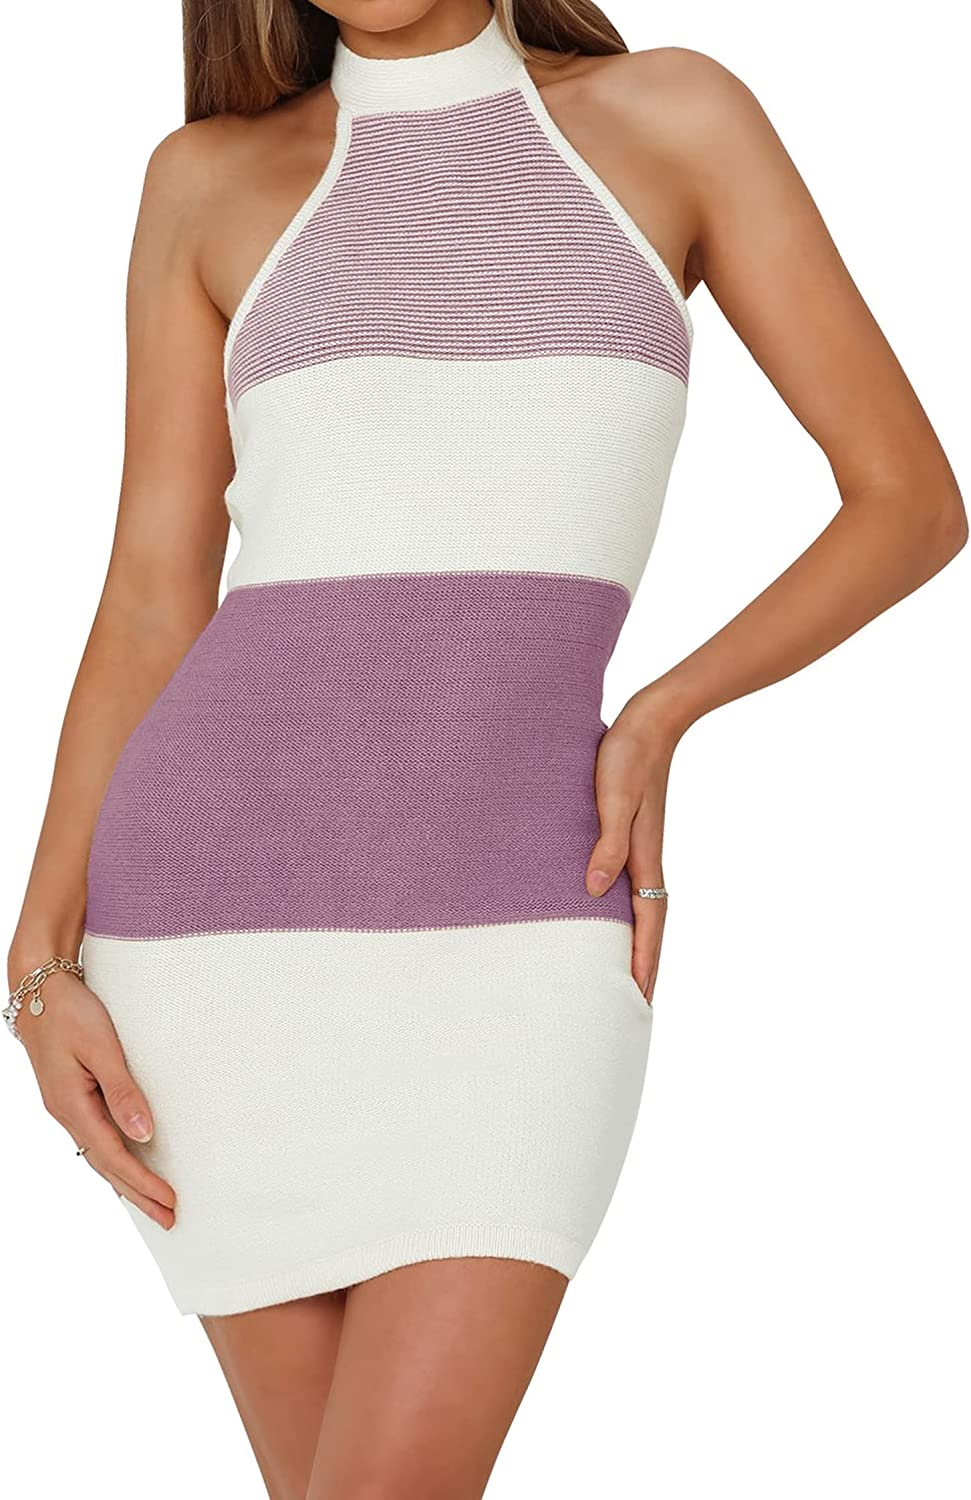 ZOWODO Women's Halter Neck Sleeveless Striped Color Block Backless Bodycon Knitted Sweater Mini Dress